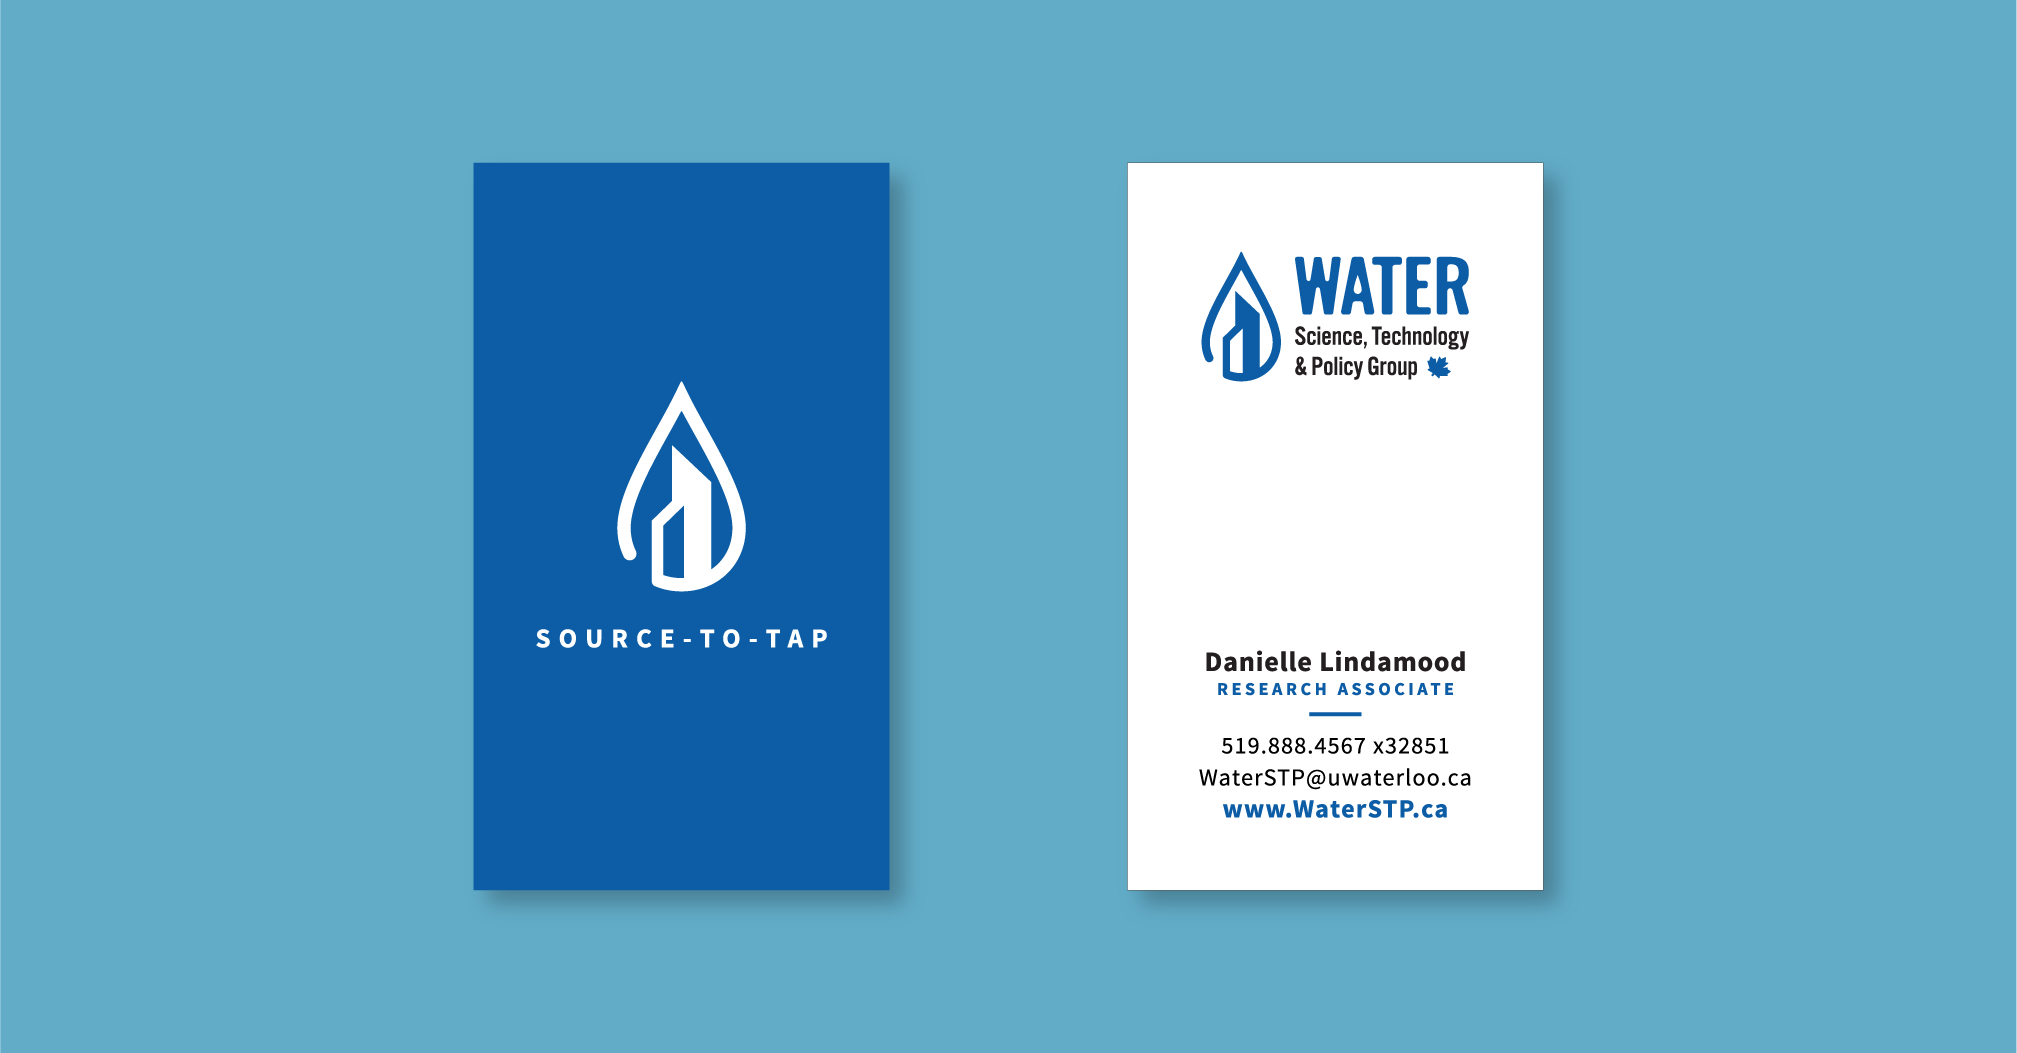 Water technology service for municipalities brand identity logo water drop with buildings business card